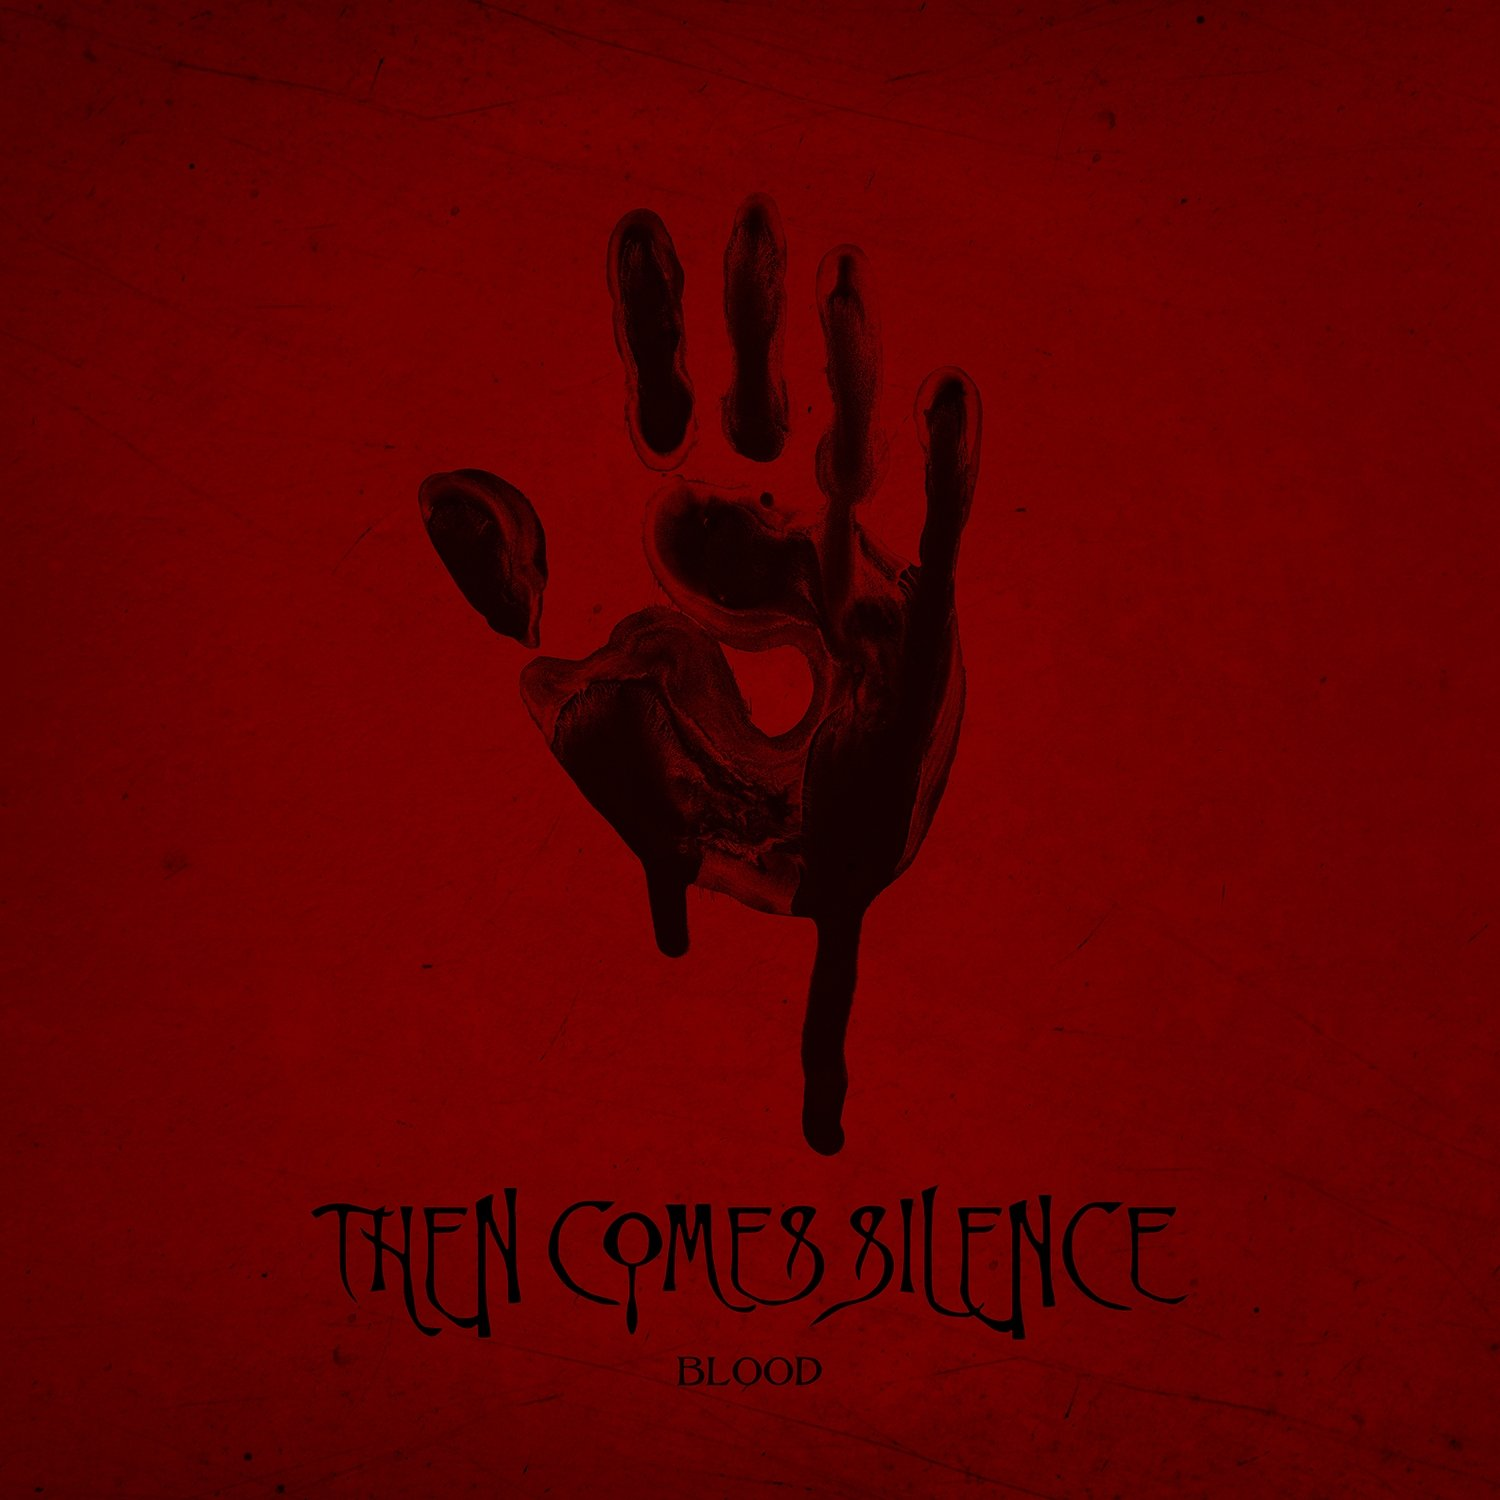 Then Comes Silence - Blood - Artwork